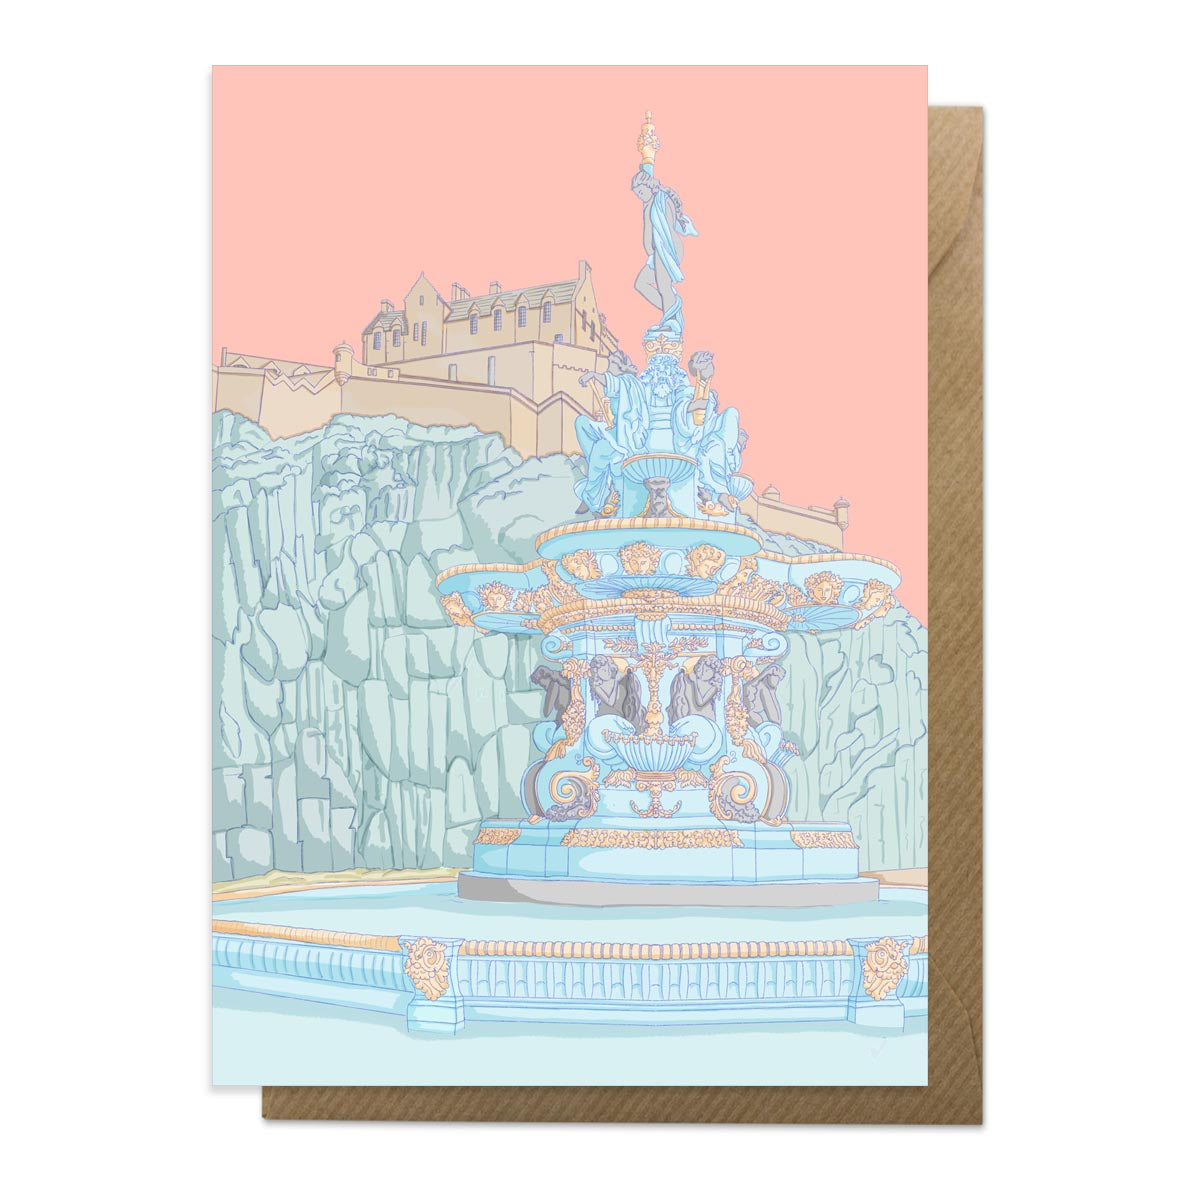 Ross Fountain Edinburgh Greetings Card